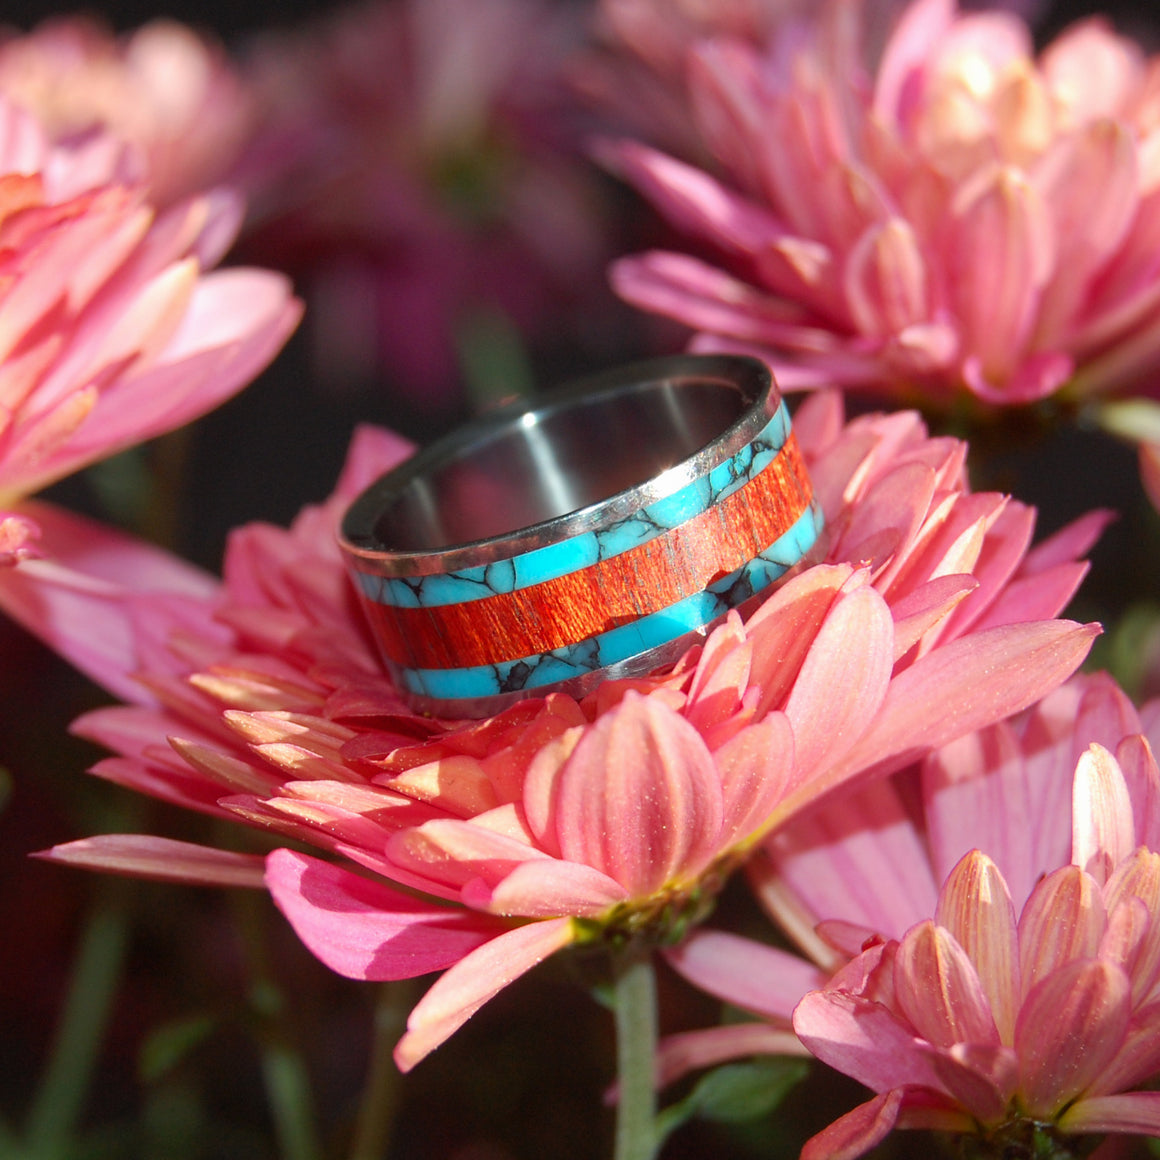 THE RING THAT JACK BUILT | Turquoise & Bloodwood Titanium Wedding Rings - Minter and Richter Designs